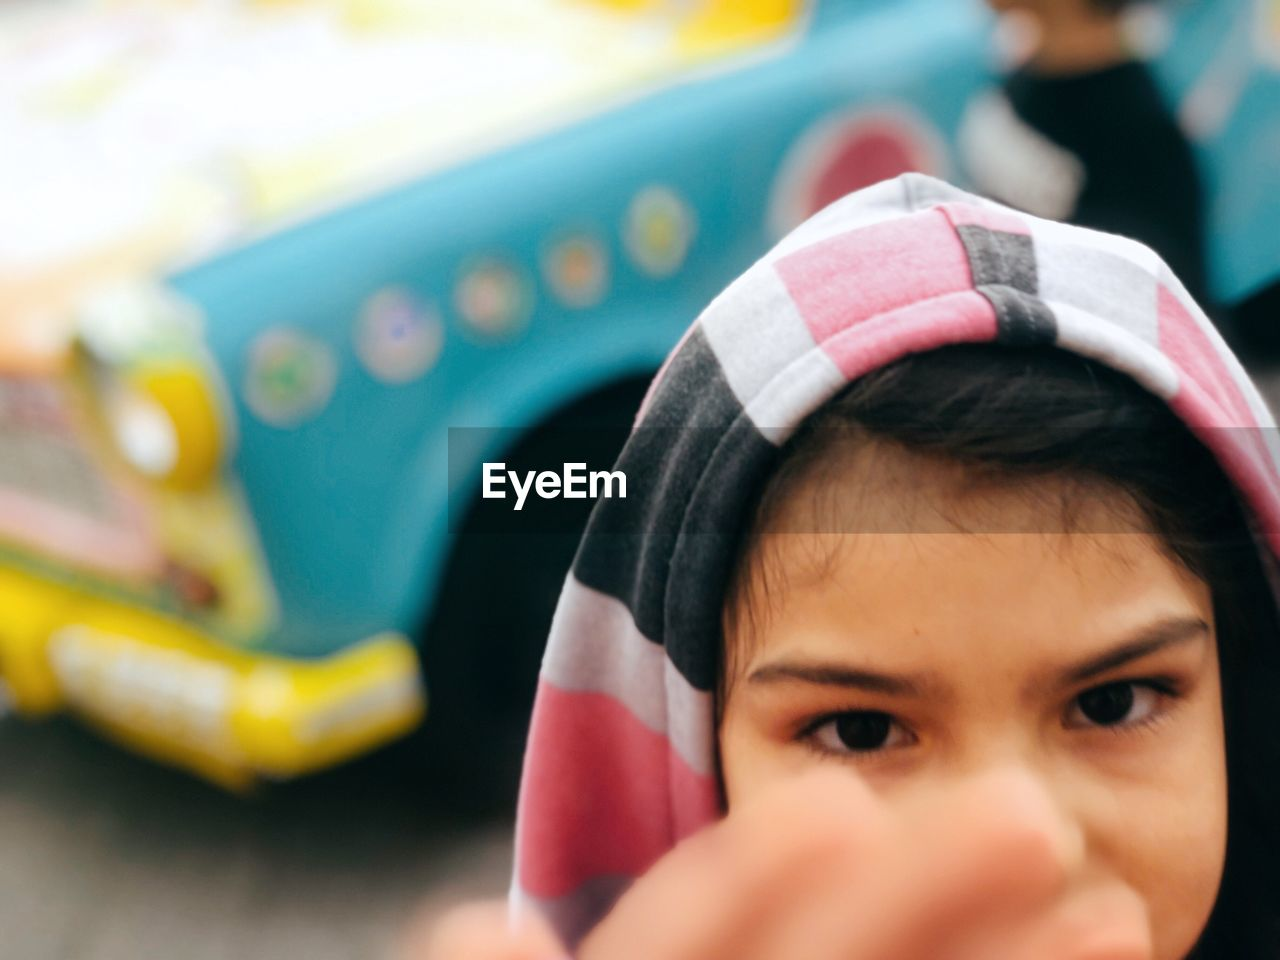 childhood, one person, leisure activity, child, real people, headshot, portrait, lifestyles, selective focus, day, innocence, front view, close-up, sport, fun, men, focus on foreground